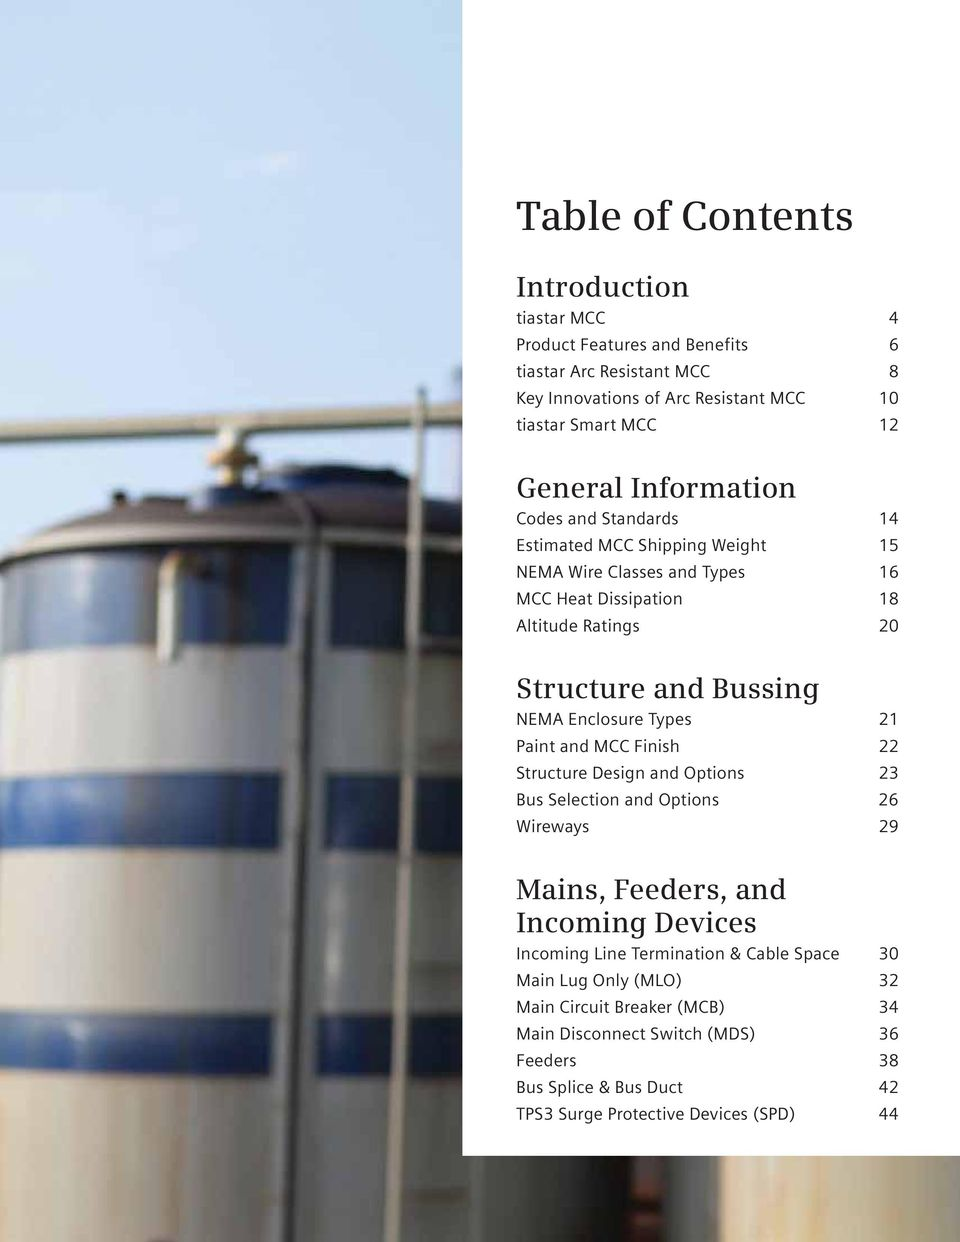 Tiastar Motor Control Center Catalog And Application Guide Pdf Mcc Panel Diagram Page 3 Pics About Space Enclosure Types 2 Paint Finish 22 Structure Design Options 23 Bus Selection